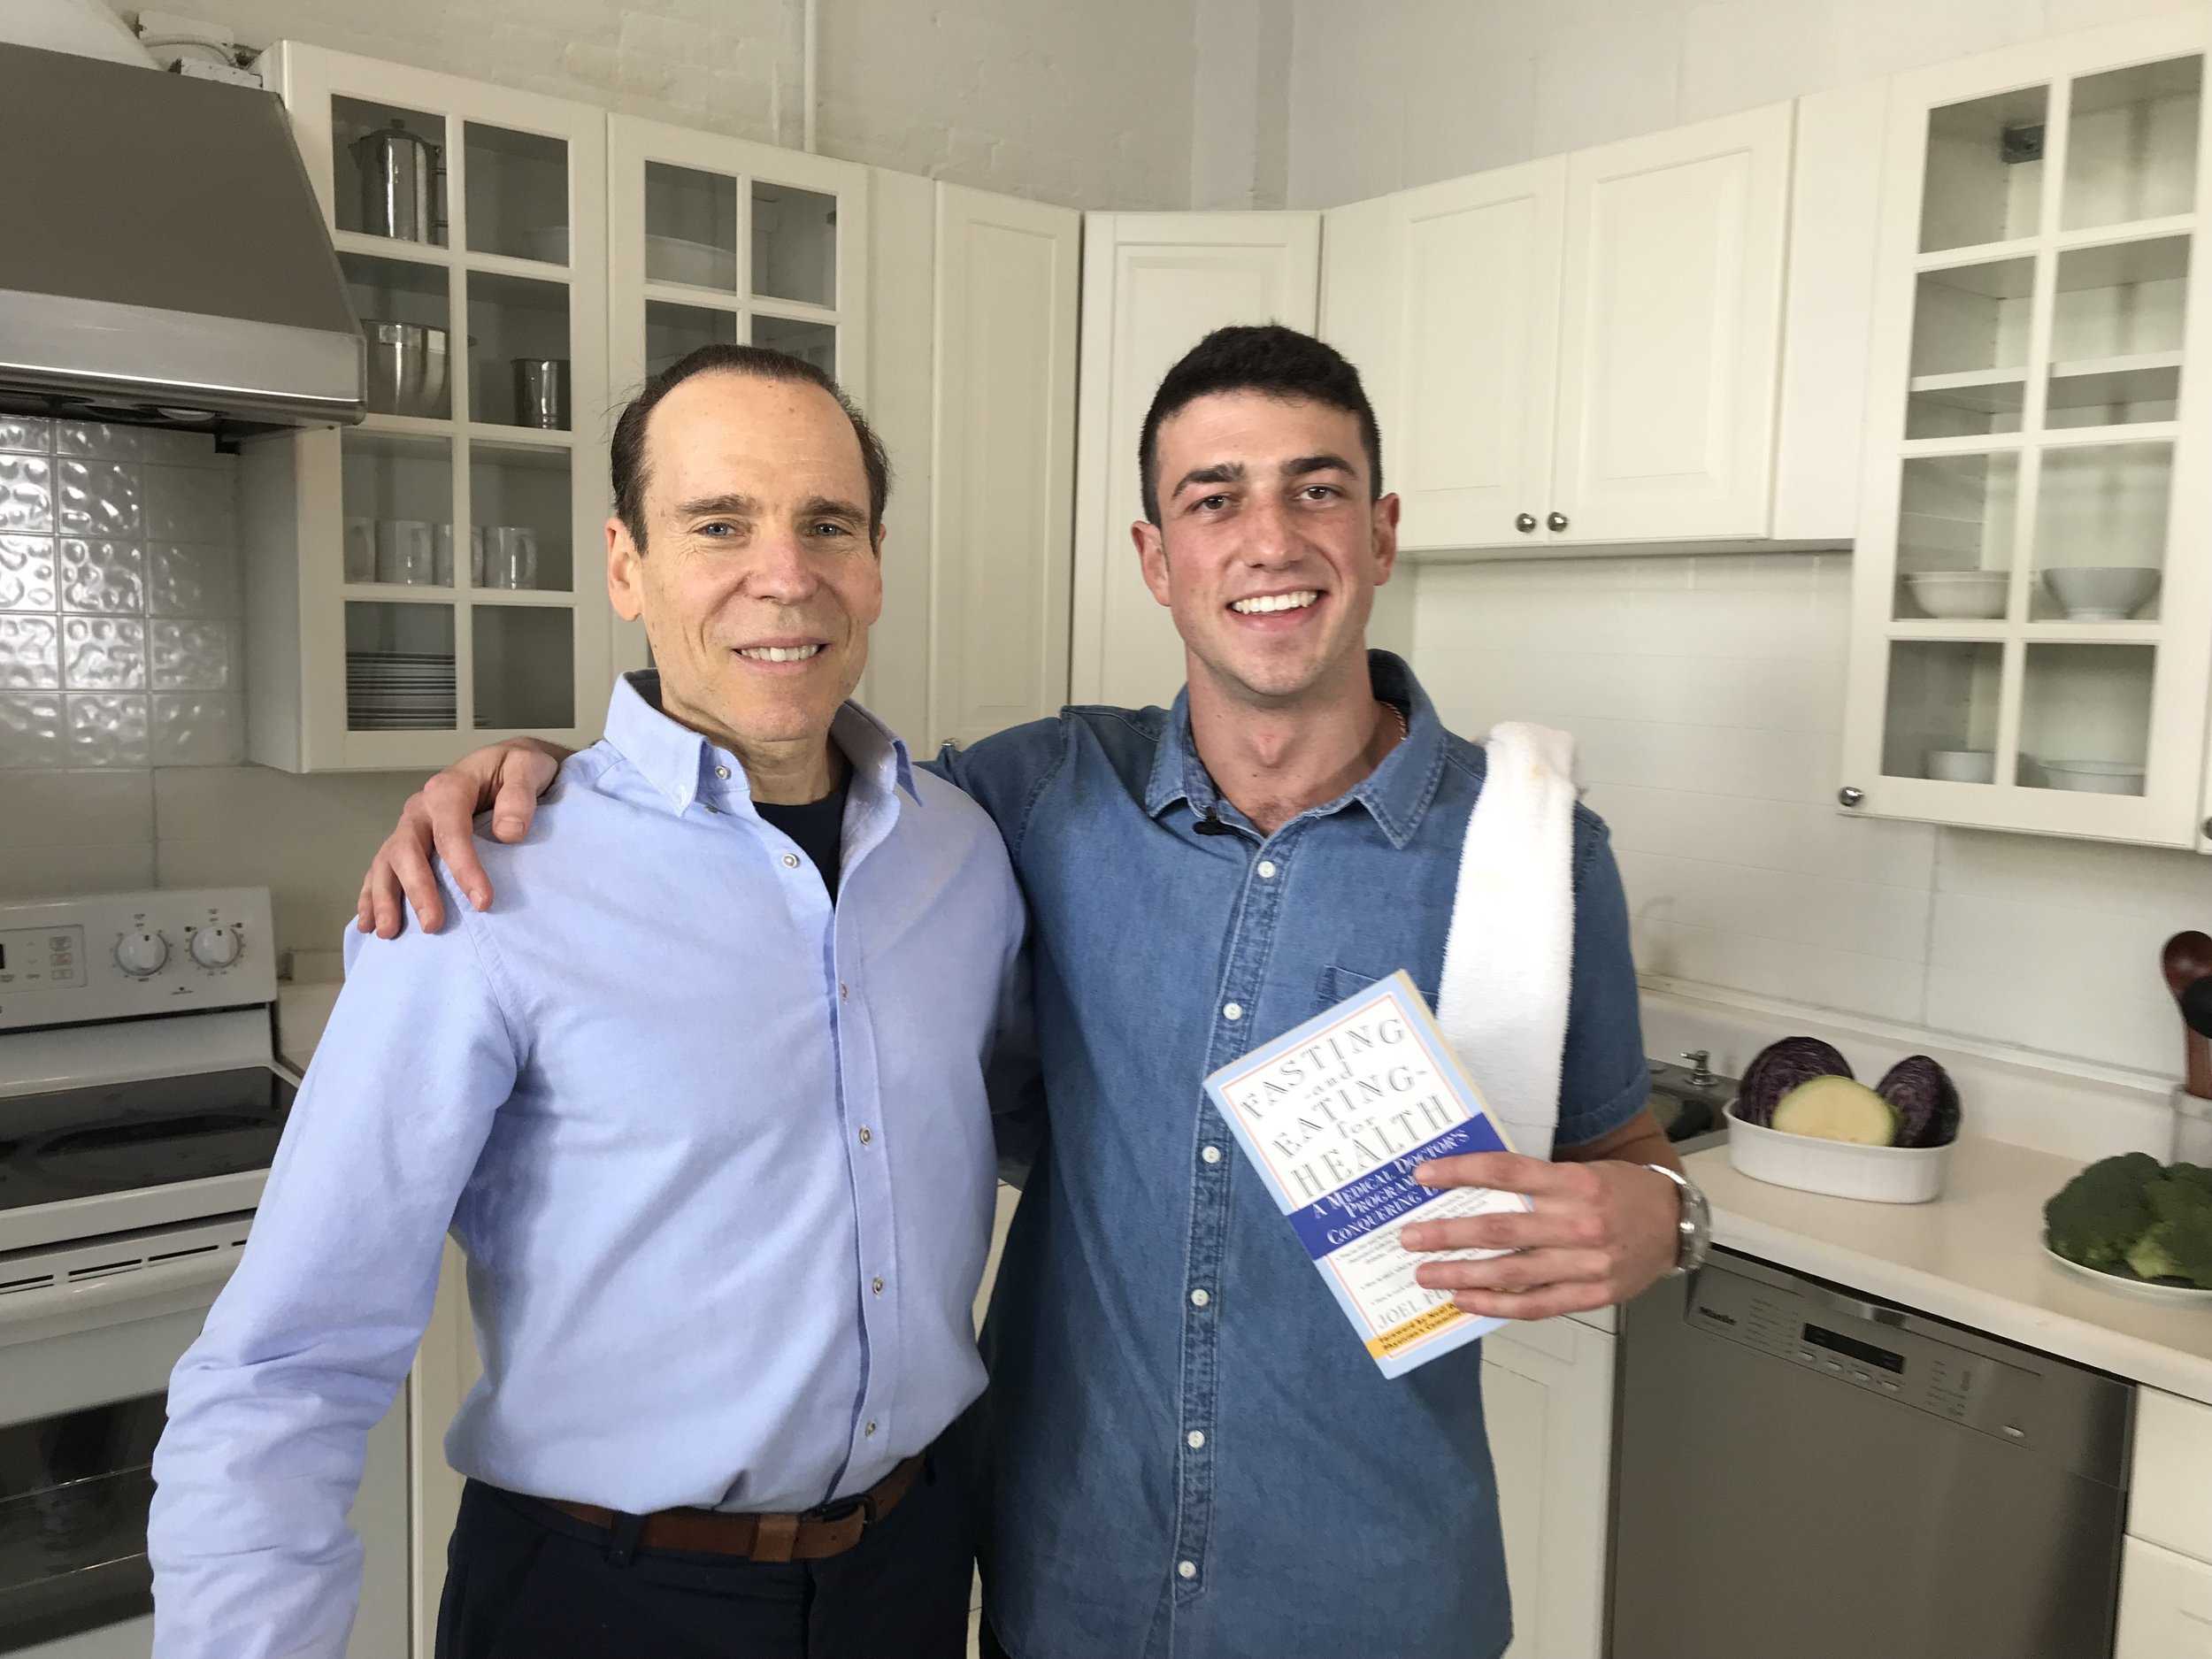 Episode 2: Eating to Live w/ Dr. Joel Fuhrman